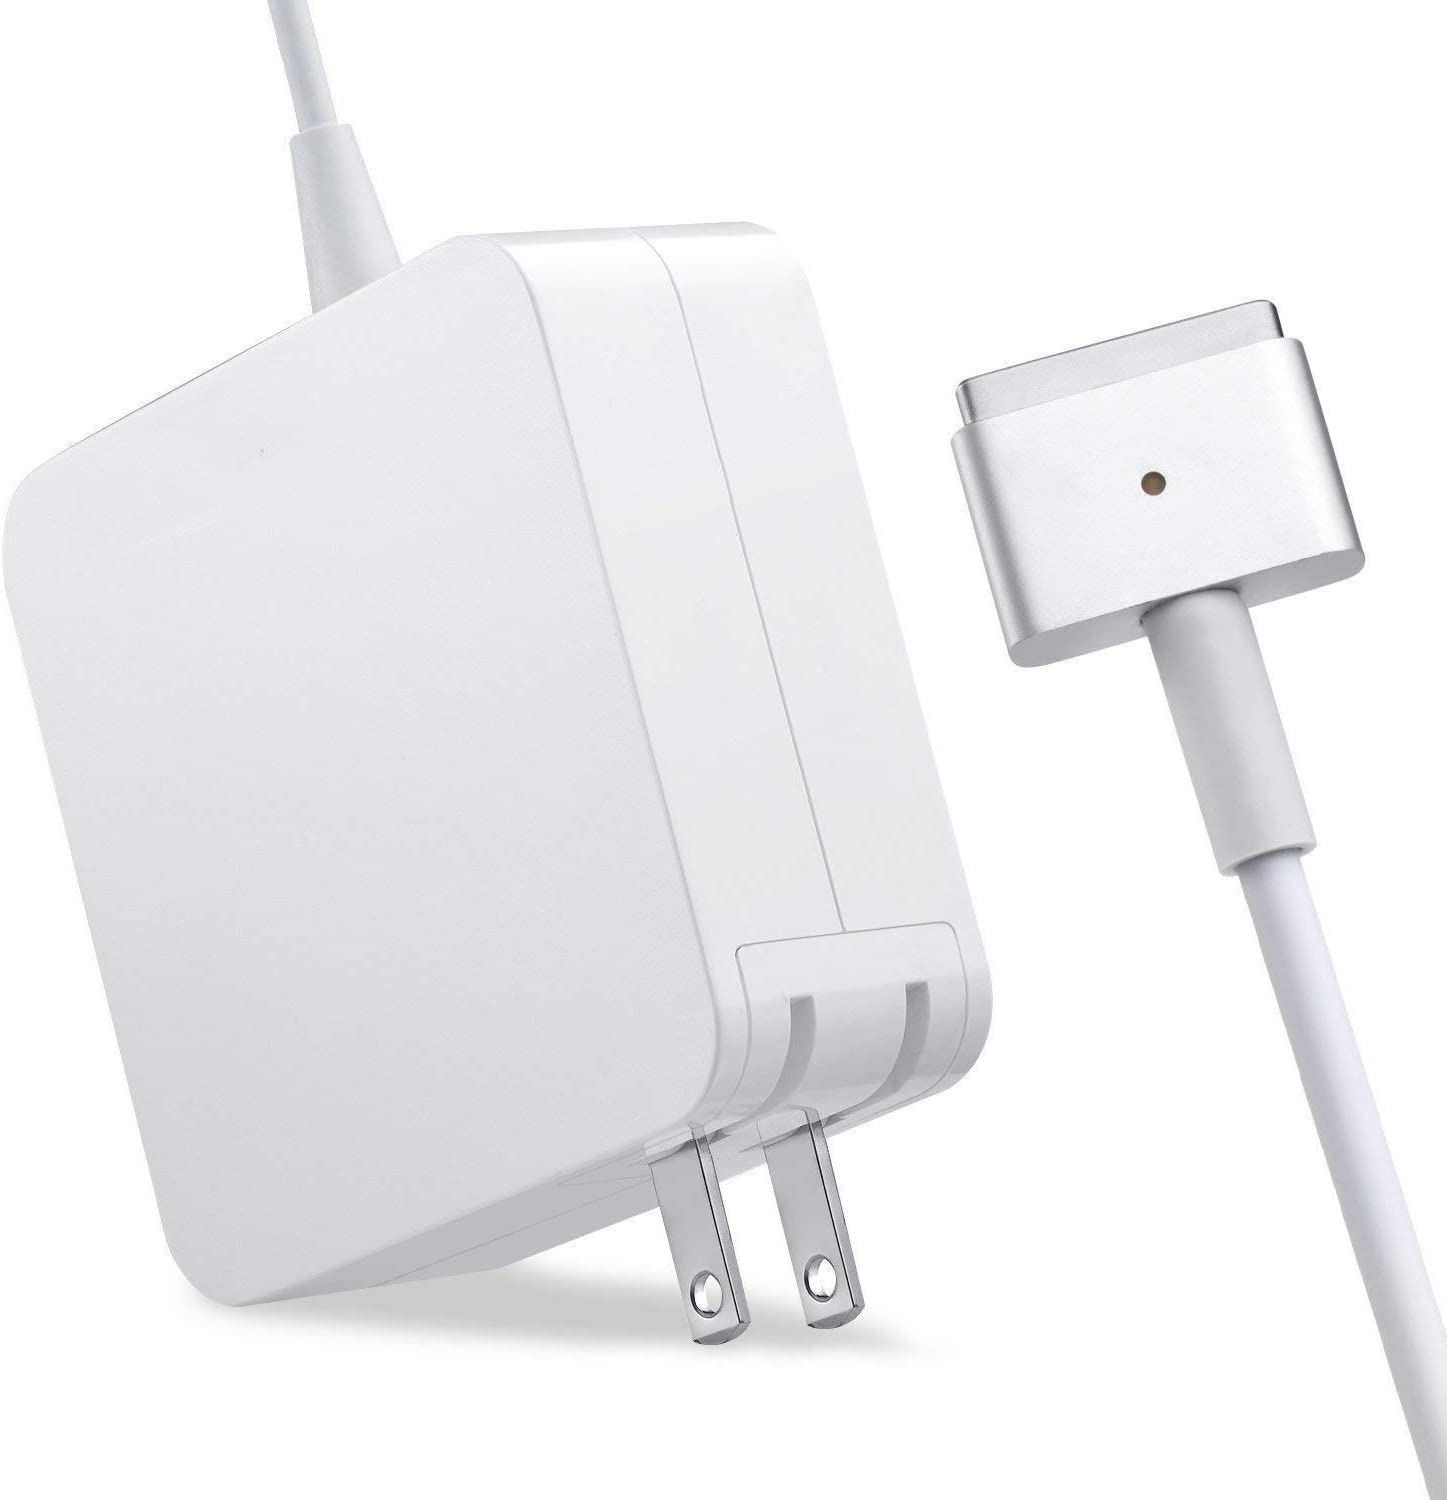 Mac Book Air Charger, AC 45W Magnetic T-Tip Power Adapter Charger Compatible with MacBook Air 11-inch/13-inch (After Mid 2012)